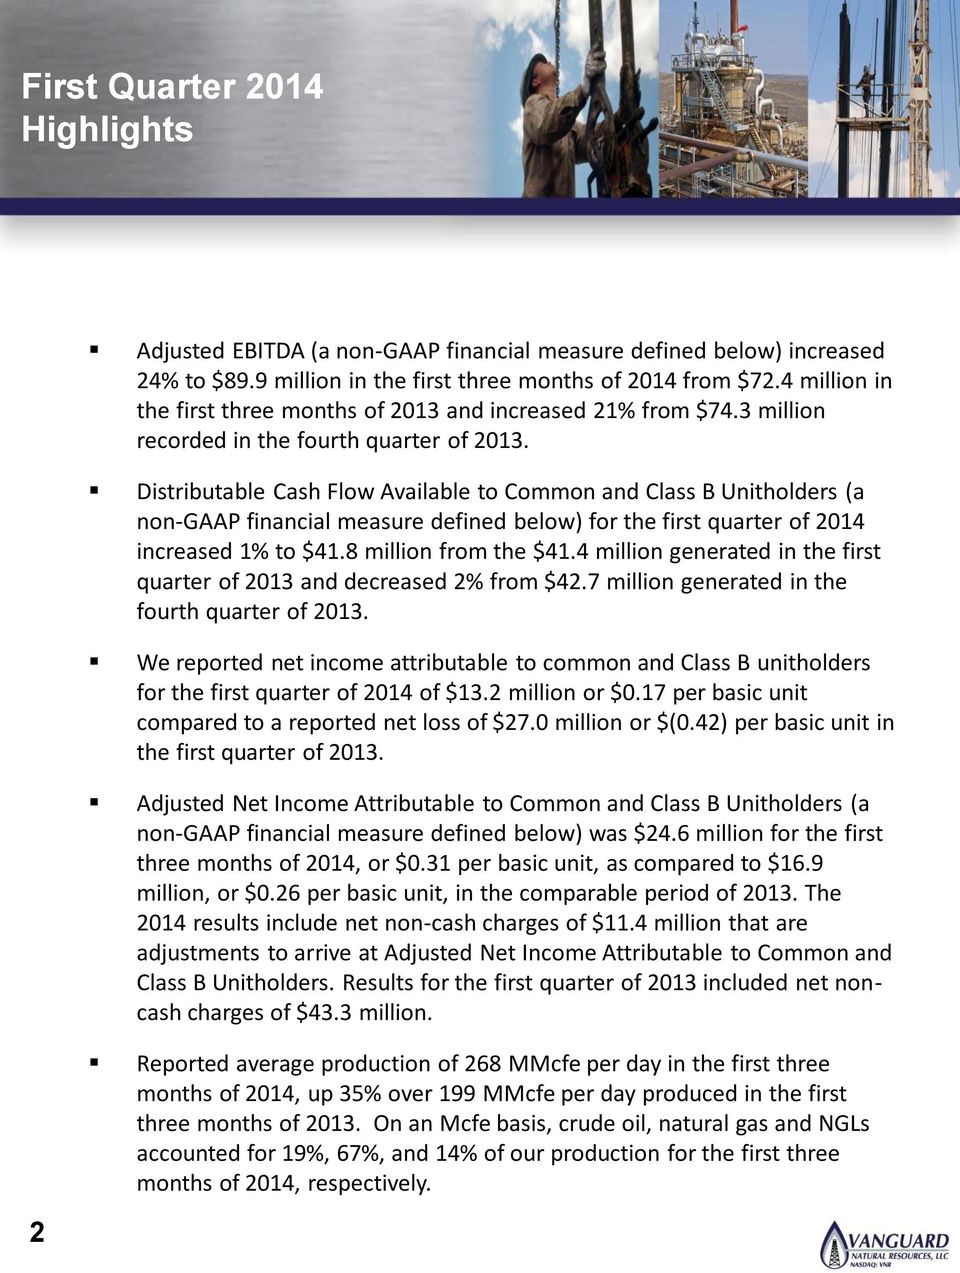 Distributable Cash Flow Available to Common and Class B Unitholders (a non-gaap financial measure defined below) for the first quarter of 2014 increased 1% to $41.8 million from the $41.